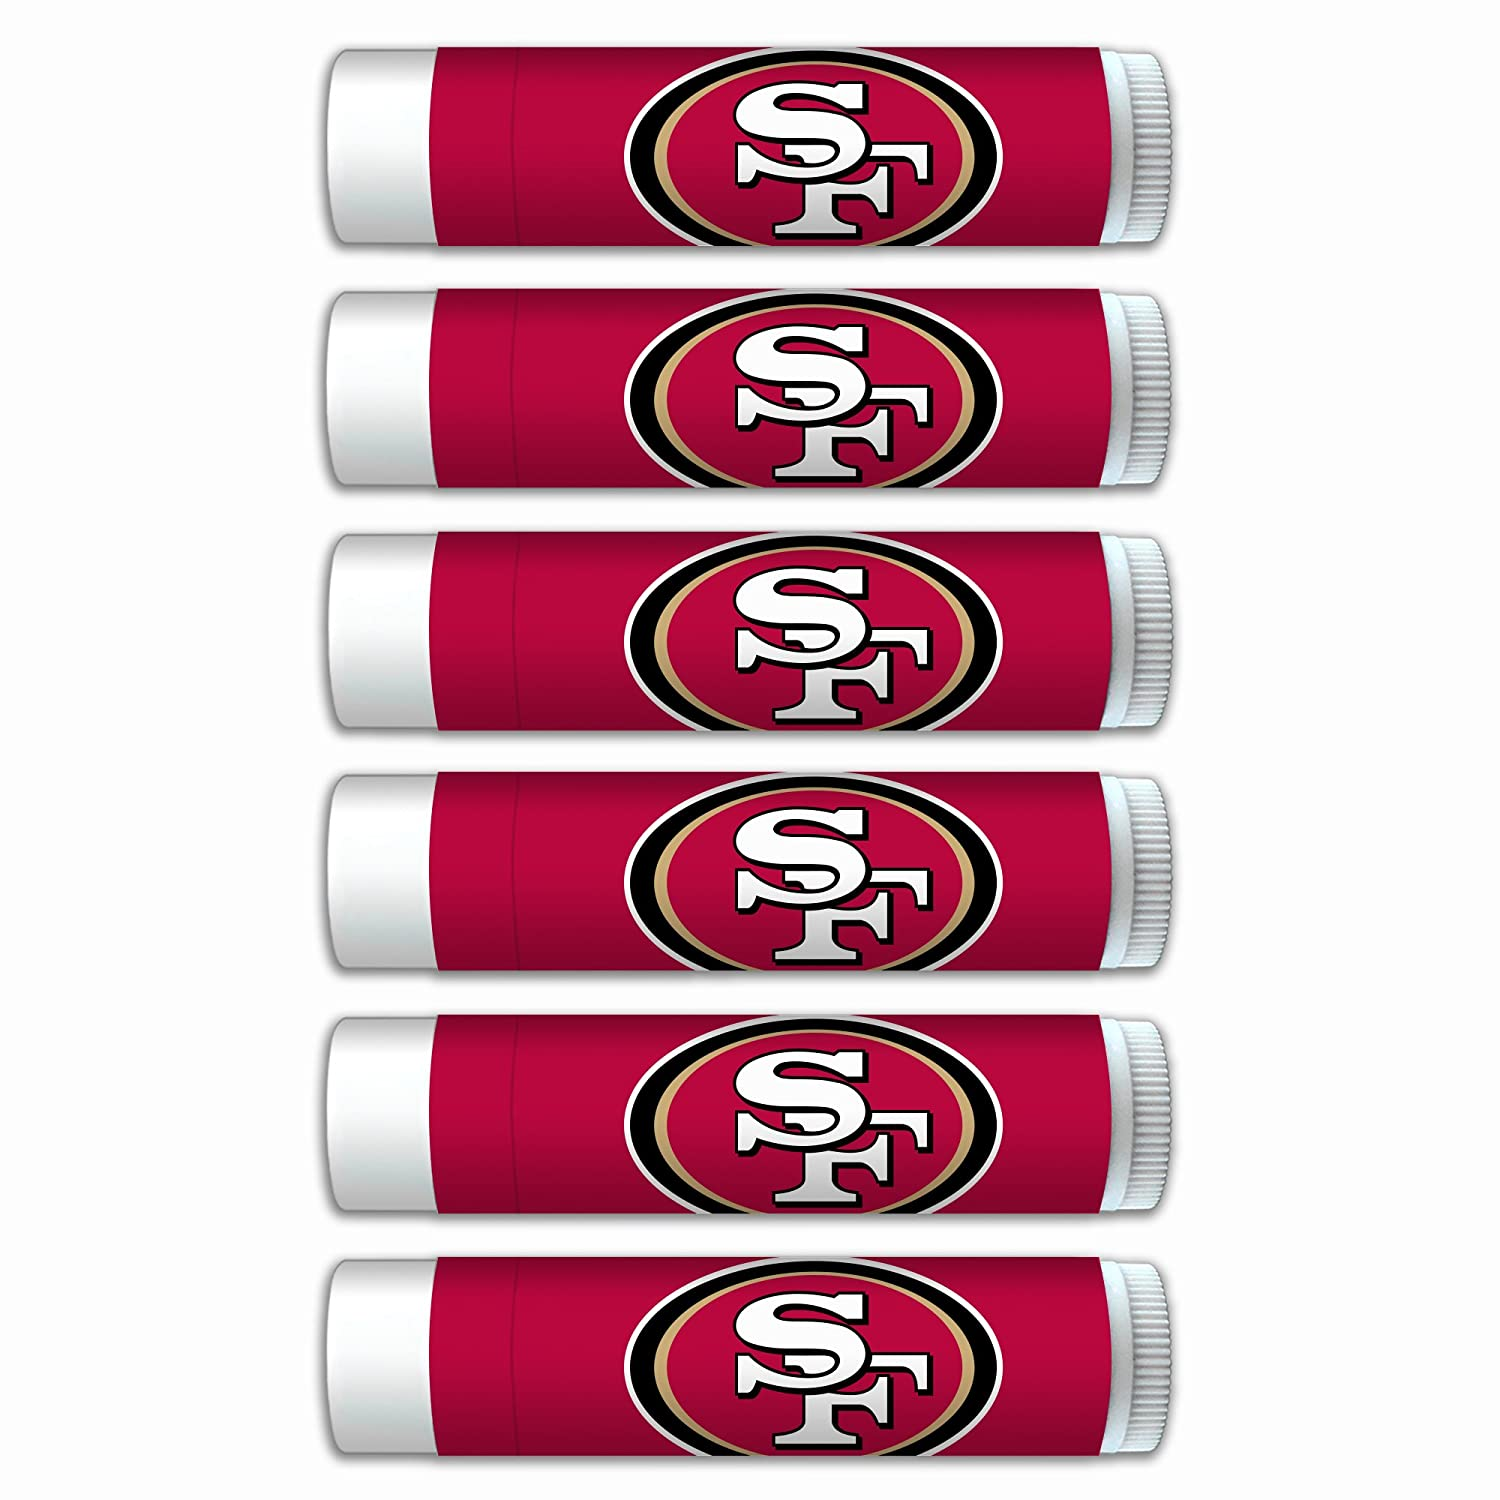 $2.00 OFF San Francisco 49ers Smooth Mint Lip Balm 6-Pack with SPF 15, Beeswax, Coconut Oil, Aloe Vera. NFL Football Gifts for Men and Women, Mother's Day, Fathers Day, Easter, Stocking Stuffers